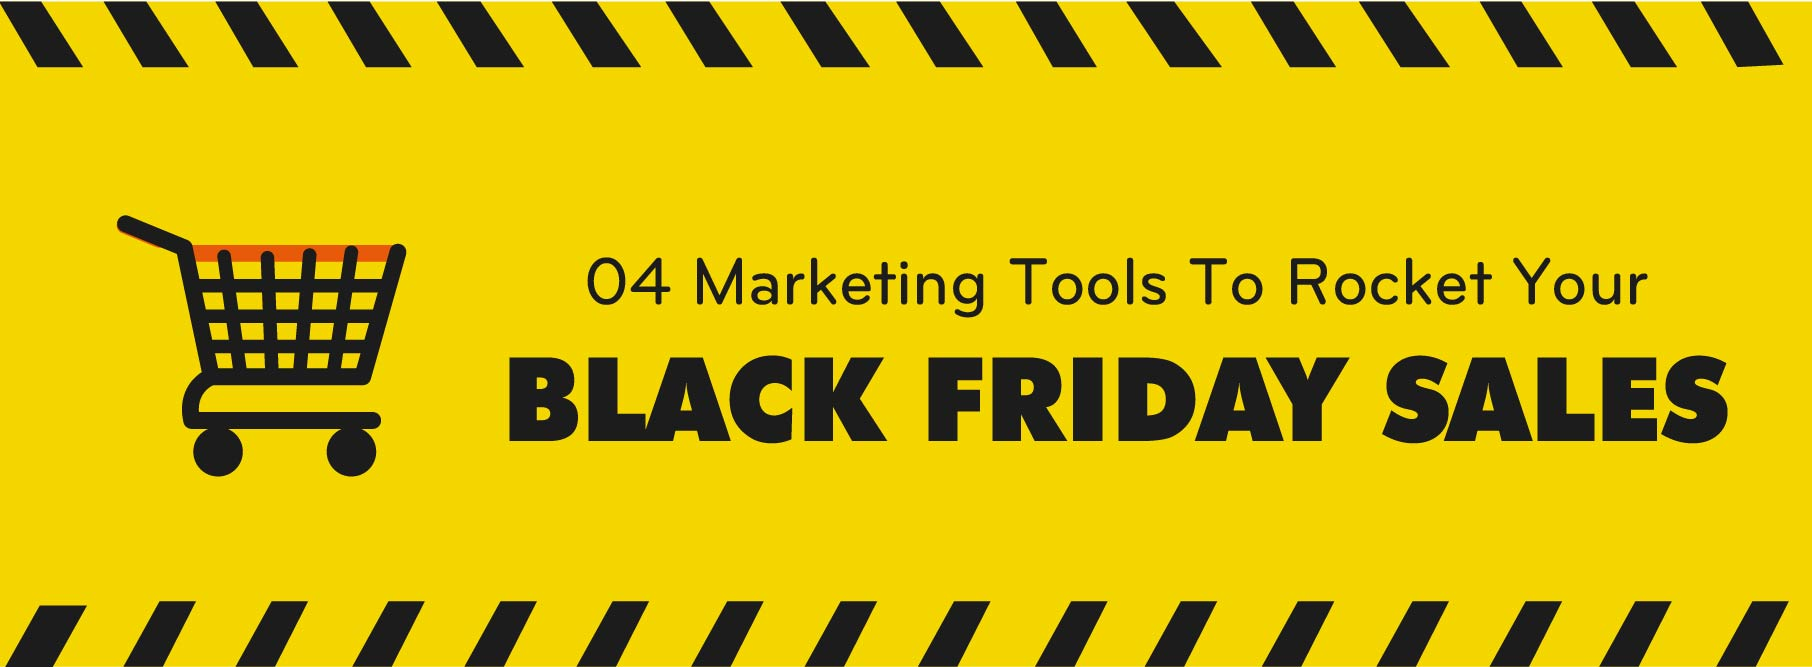 04 marketing tools to rocket your black friday sales